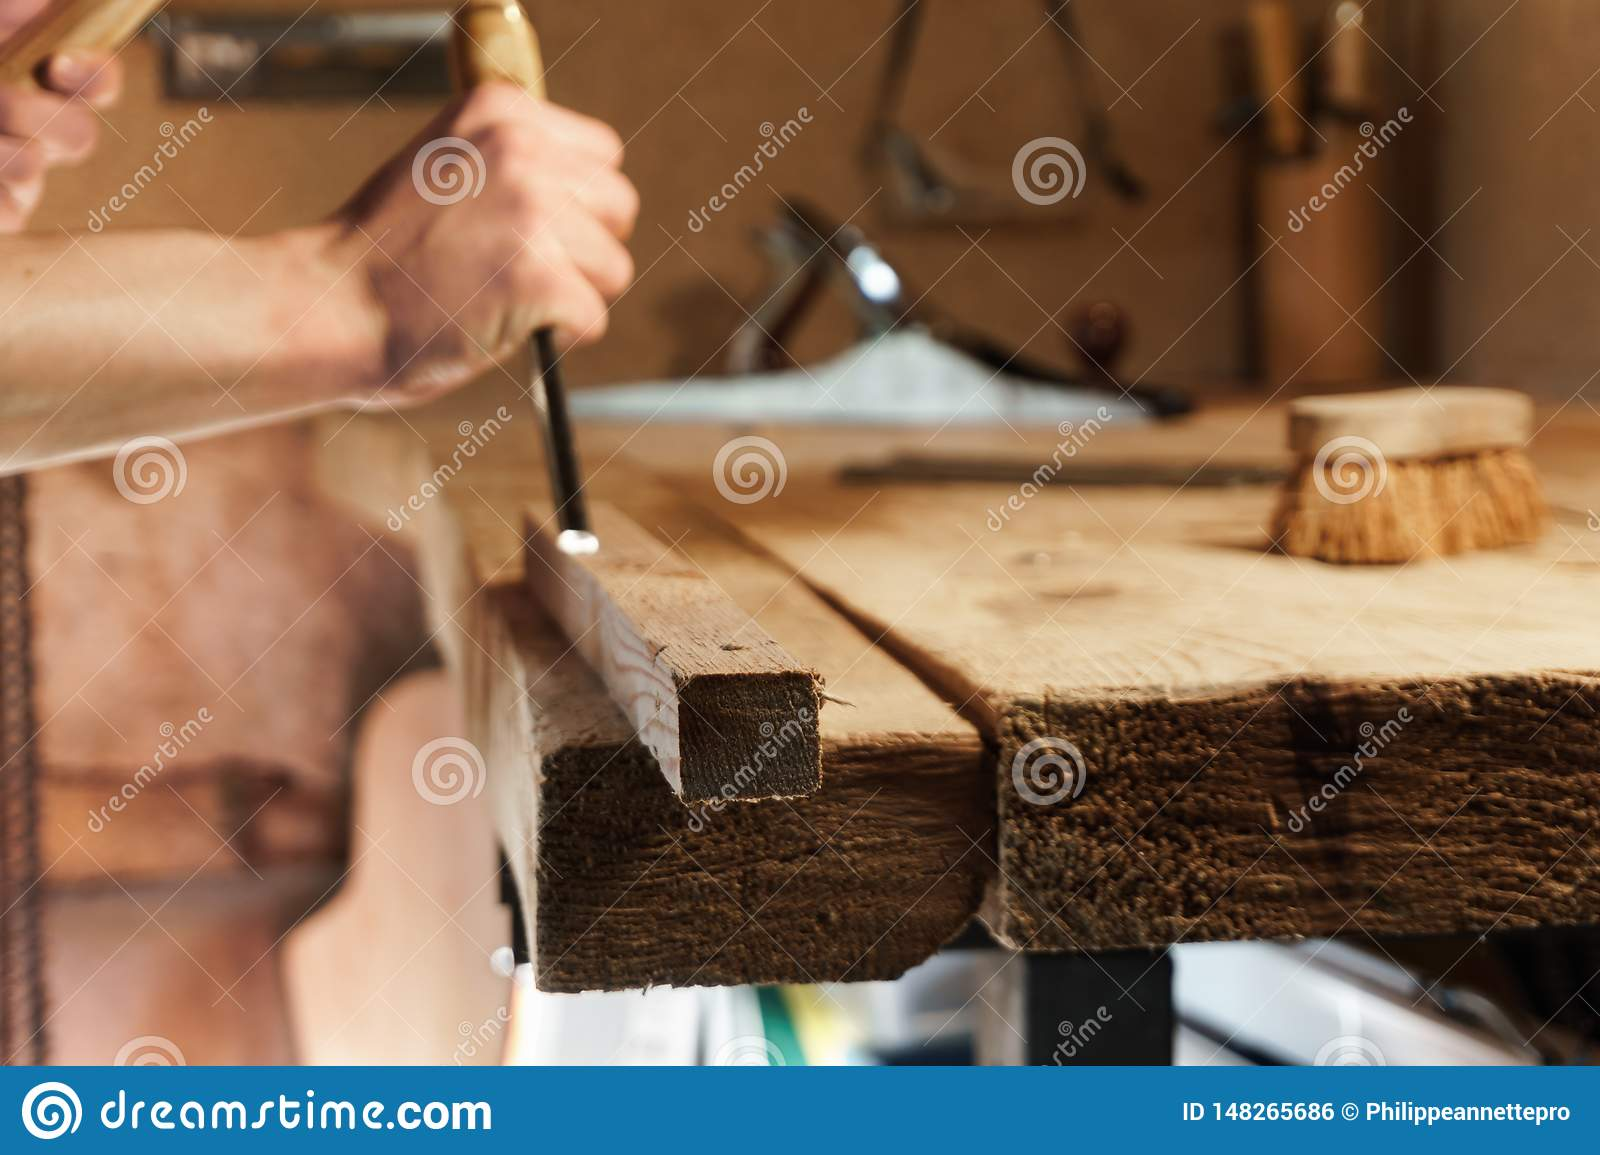 Carpenter carving wood with a chisel